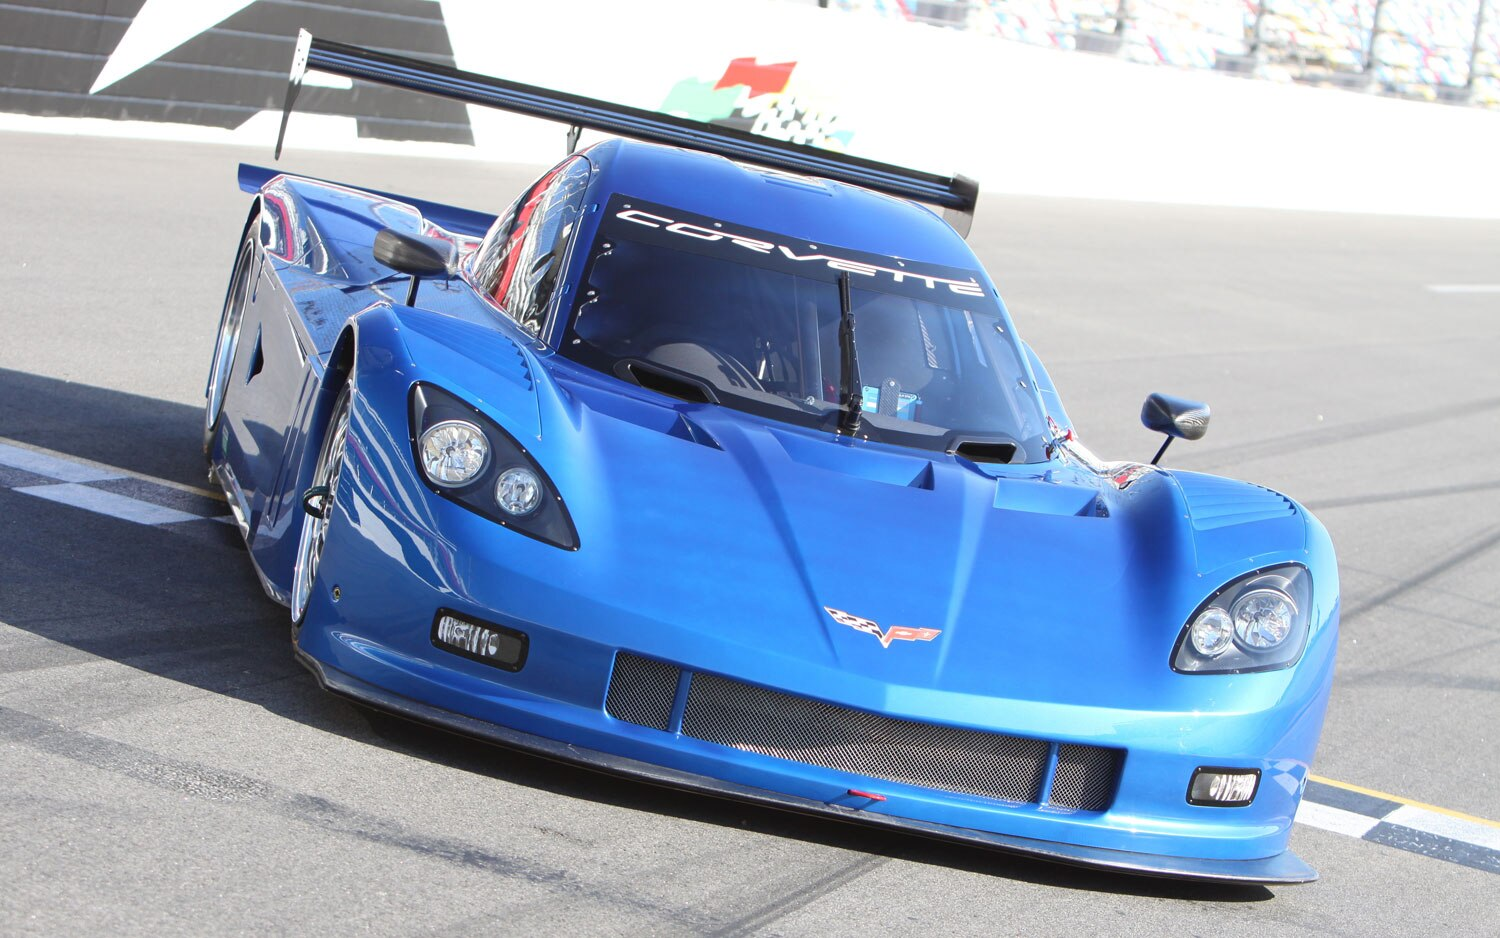 2012 Chevy Corvette Daytona Prototype Front Top1